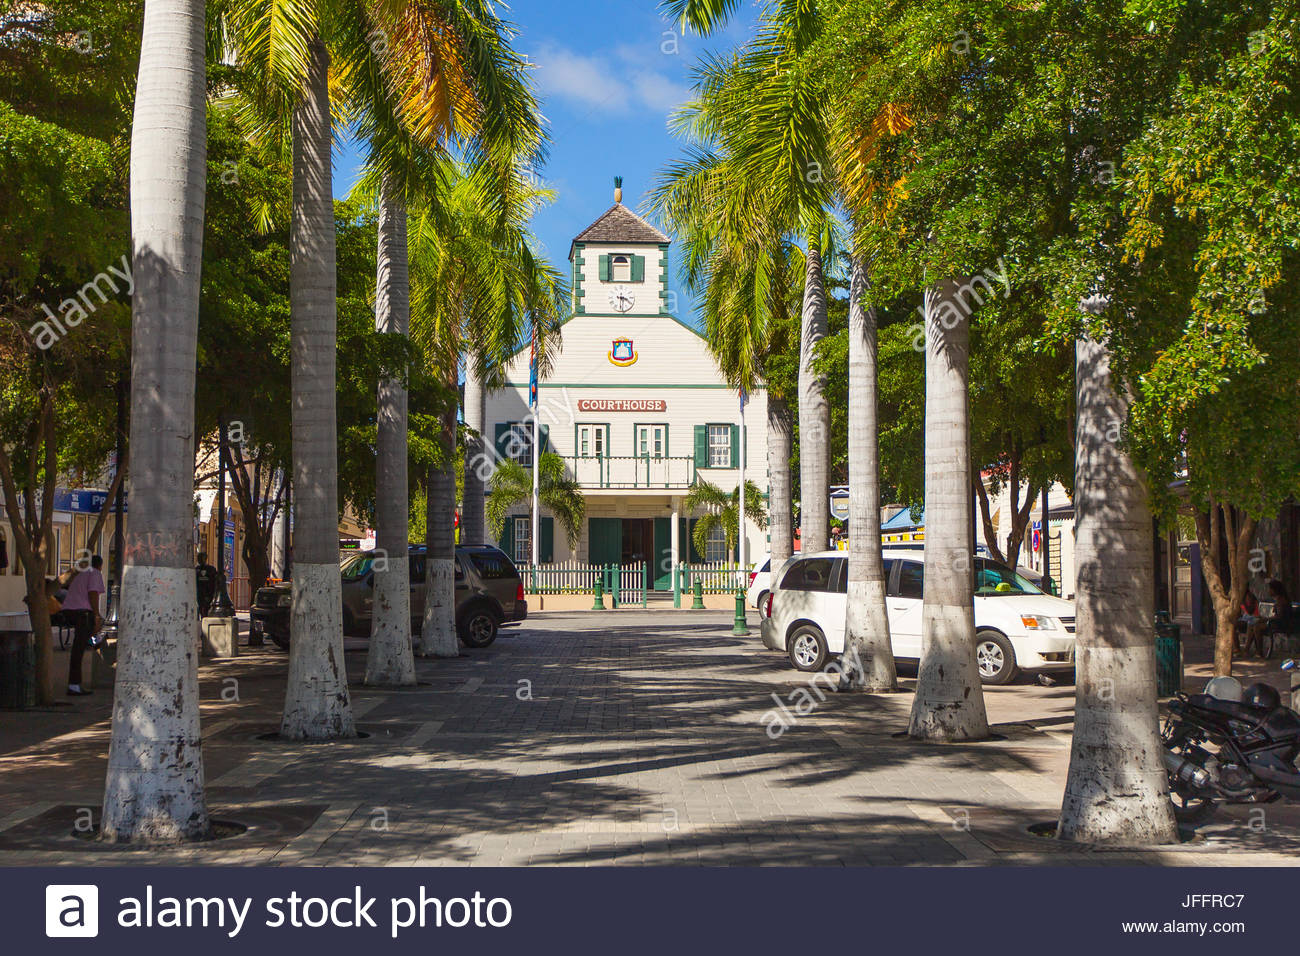 The Courthouse in downtown Philipsburg, at the end of a row of palm tree-lined parking spaces. - Stock Image